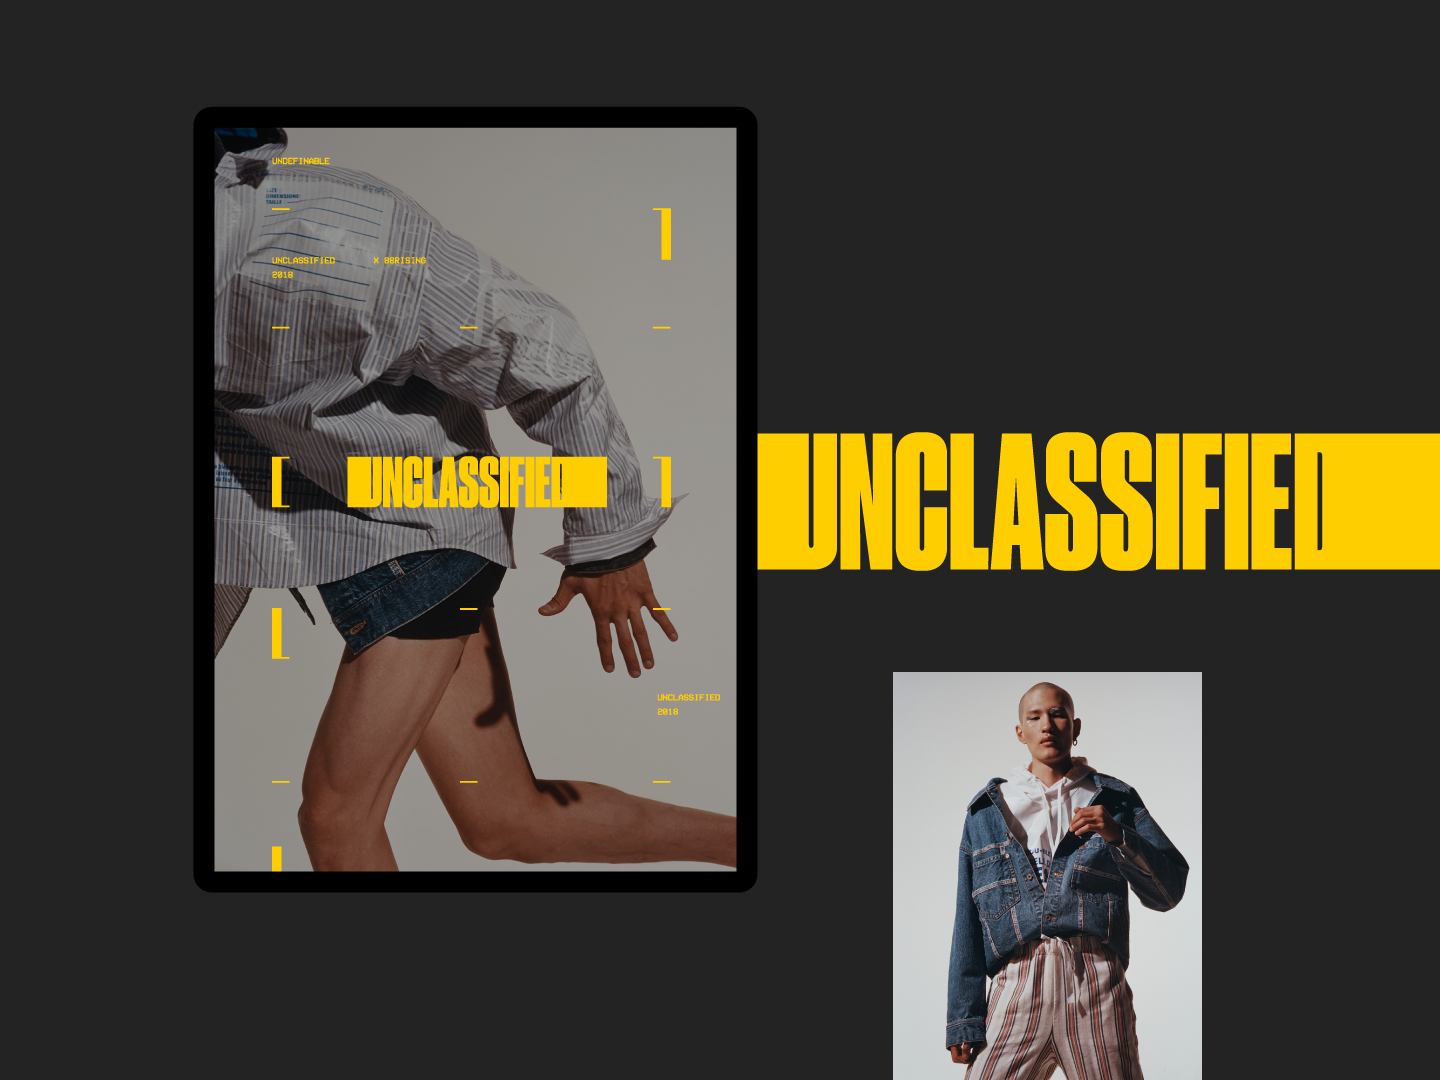 unclassified x 88rising unclassified branding concept underground fashion 88rising sportswear streetwear graphic design